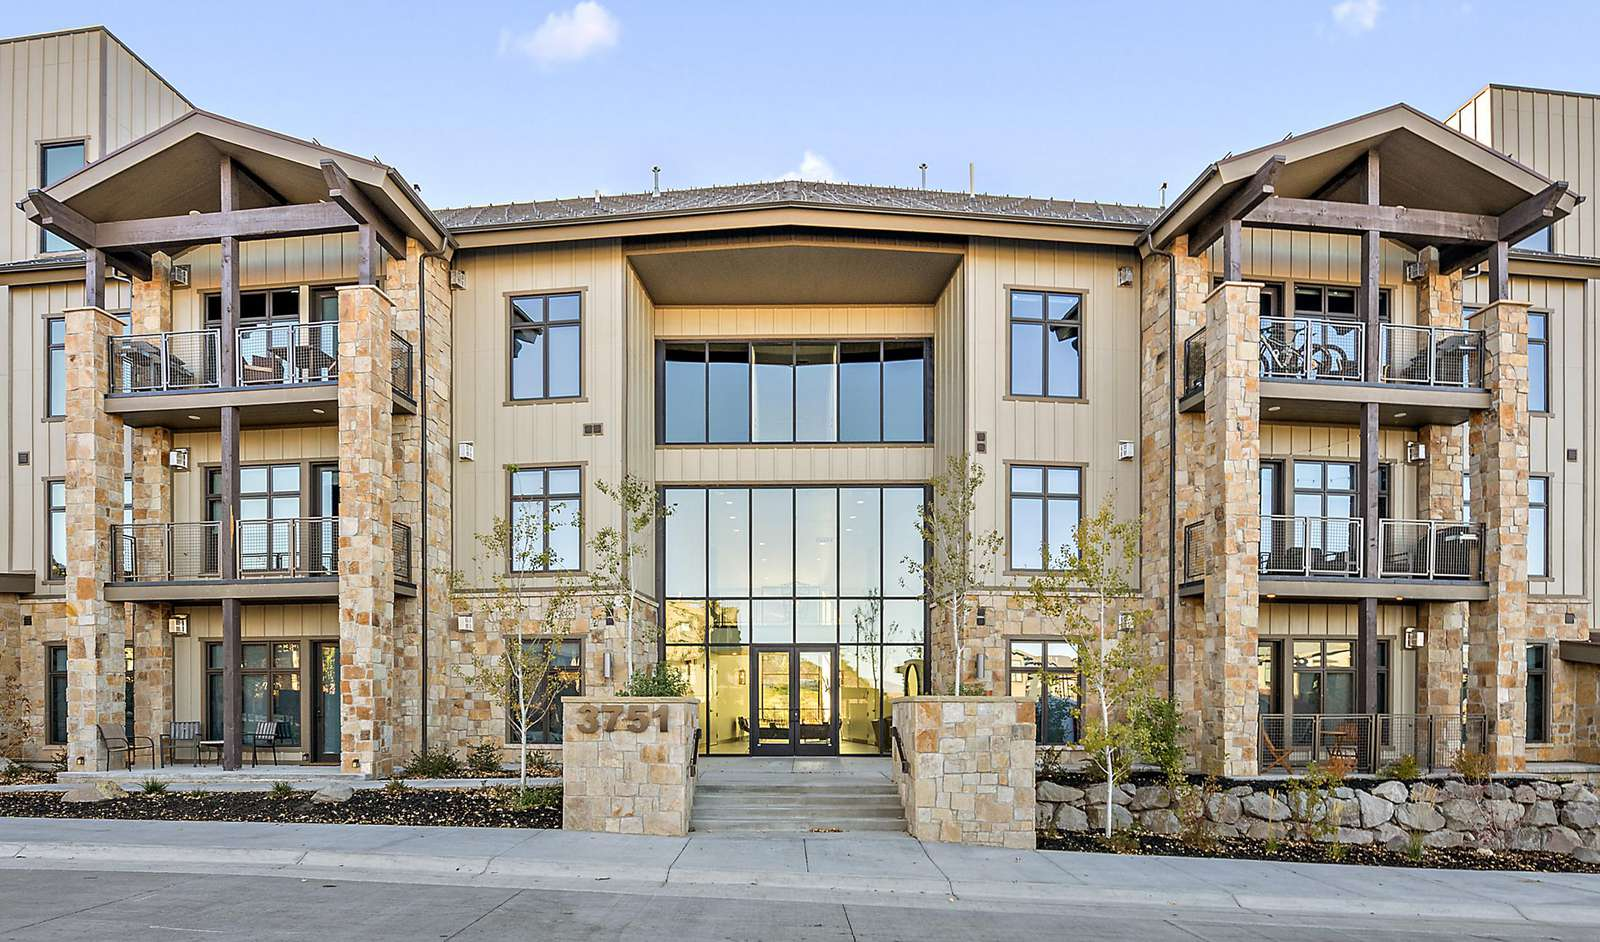 The condo is easily accessible from the main lobby, side entrances, or entrance to the heated underground garage